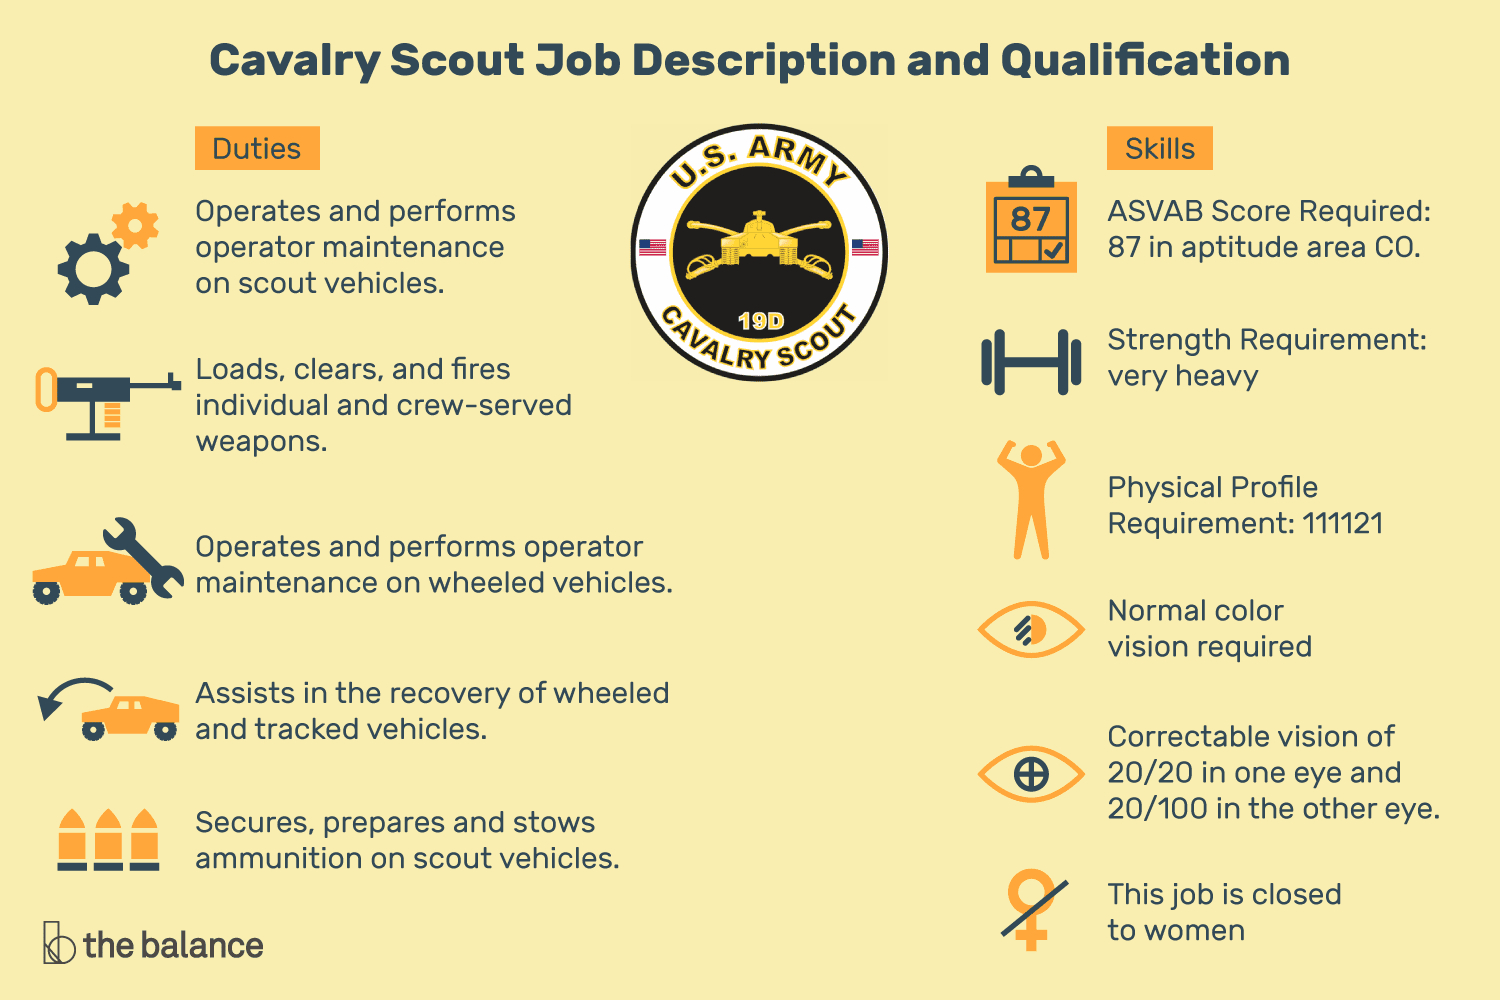 Direct Care Worker Job Duties - Cavalry Scout Mos 19d Job Description